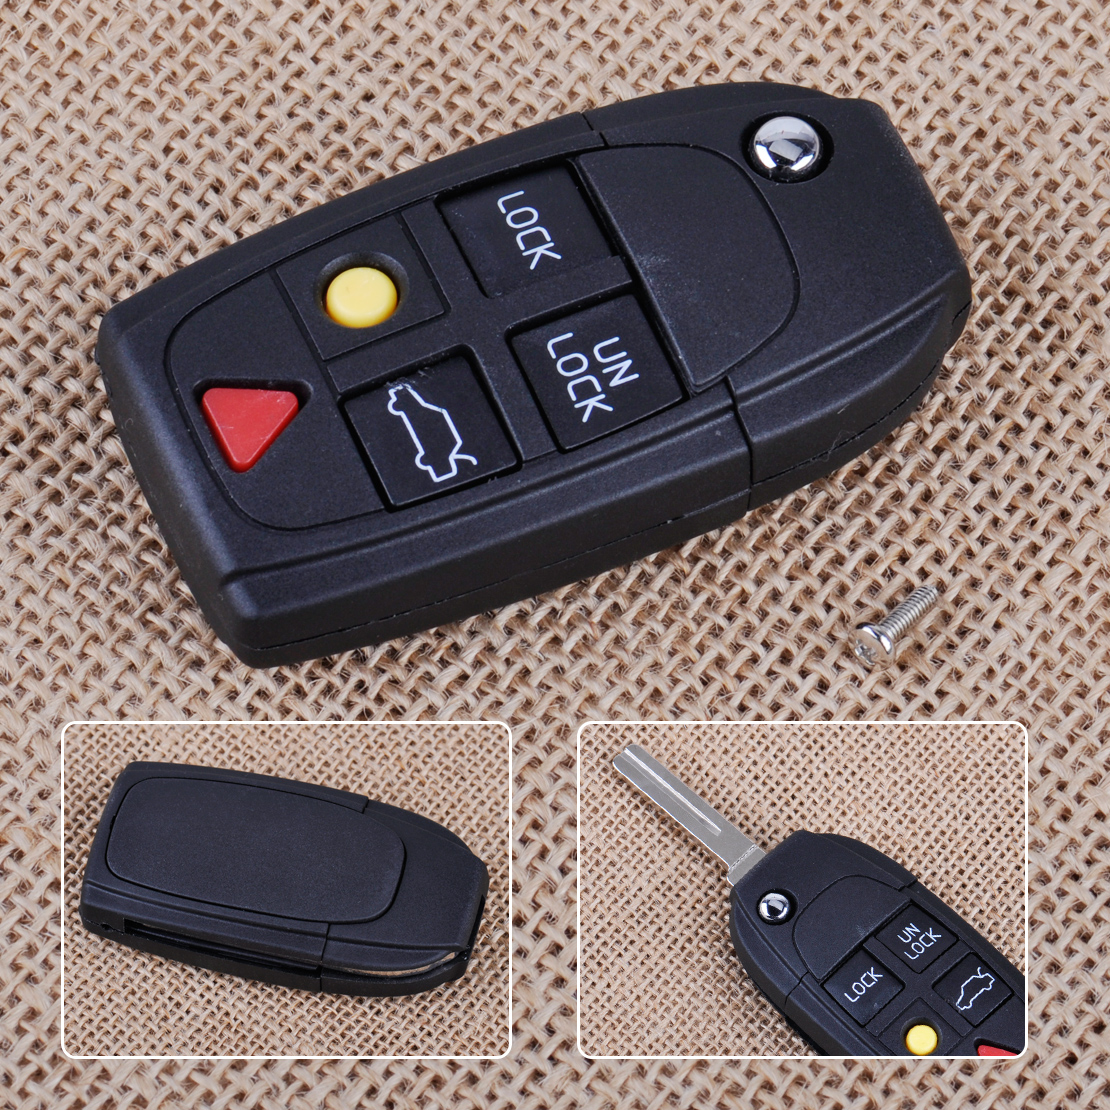 CITALL New 1pc 5 Button Flip Key Shell Folding Remote Case Fob for <font><b>Volvo</b></font> S60 S80 V70 XC70 <font><b>XC90</b></font> <font><b>2003</b></font> 2004 2005 2006 image